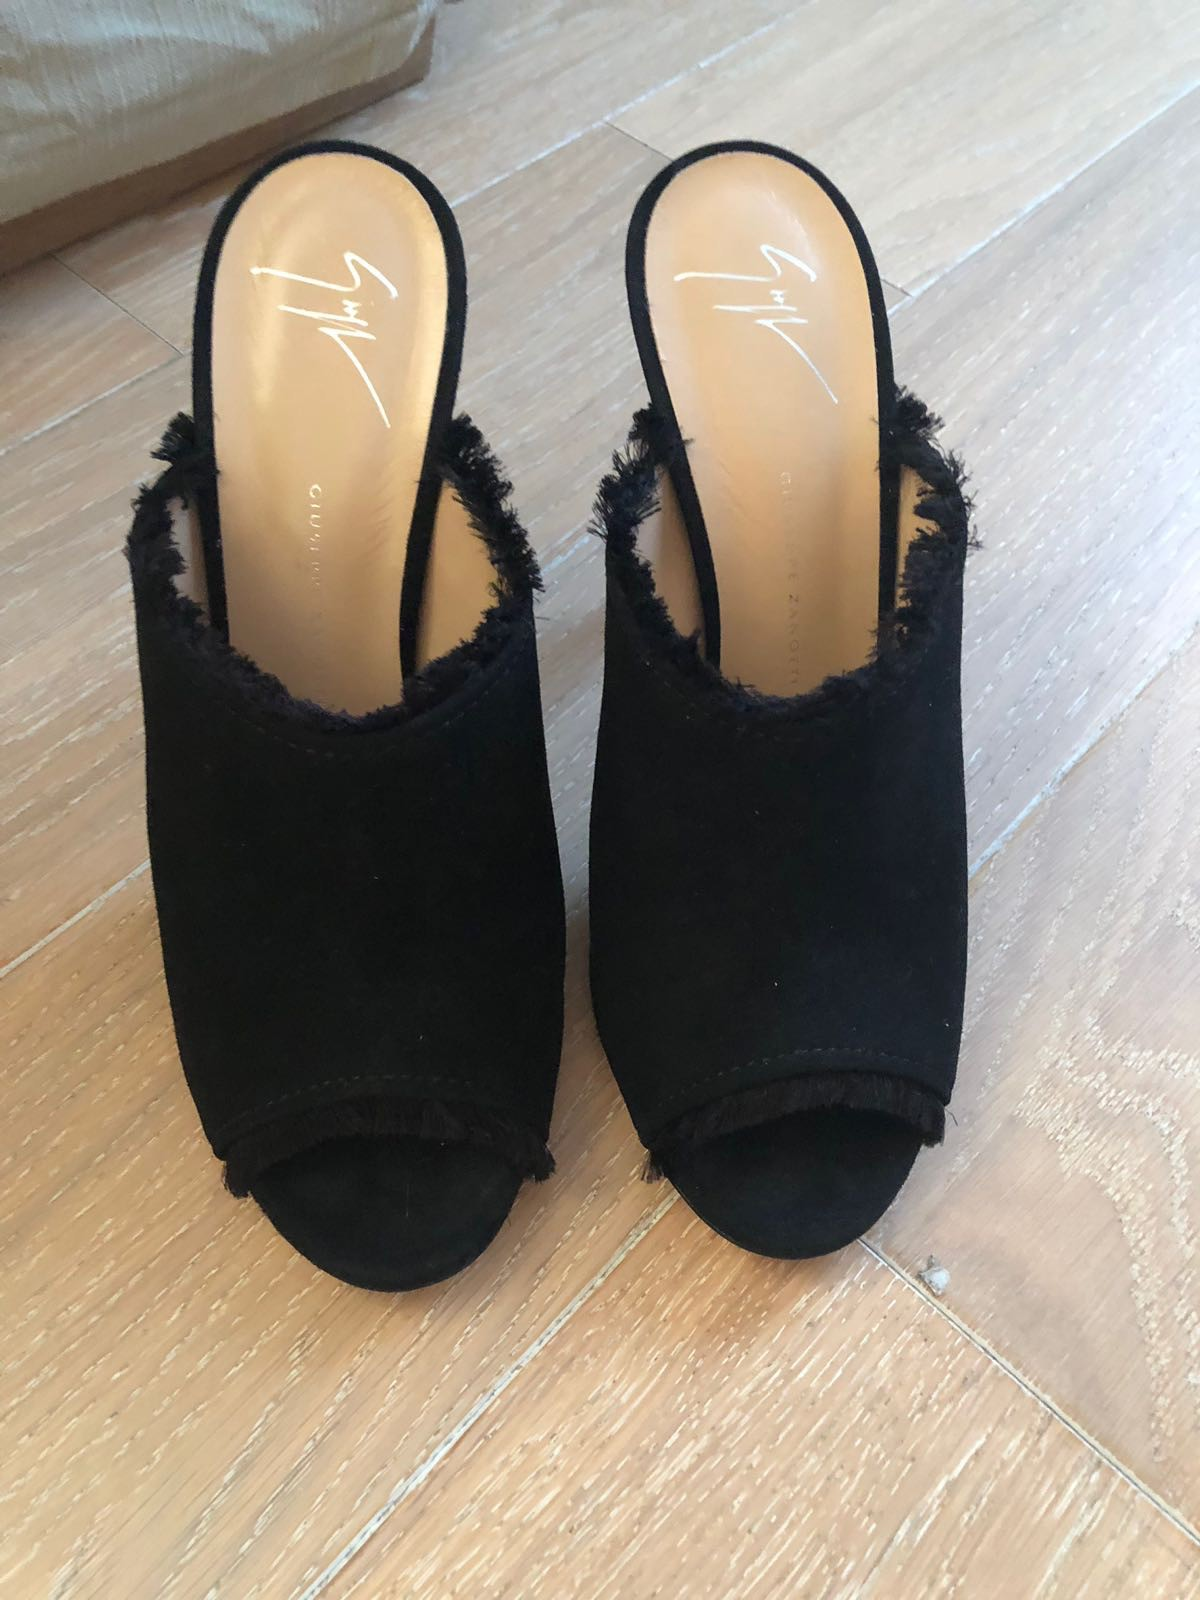 Giuseppe Zanotti Frayed mules 40 - Iconics Preloved Luxury